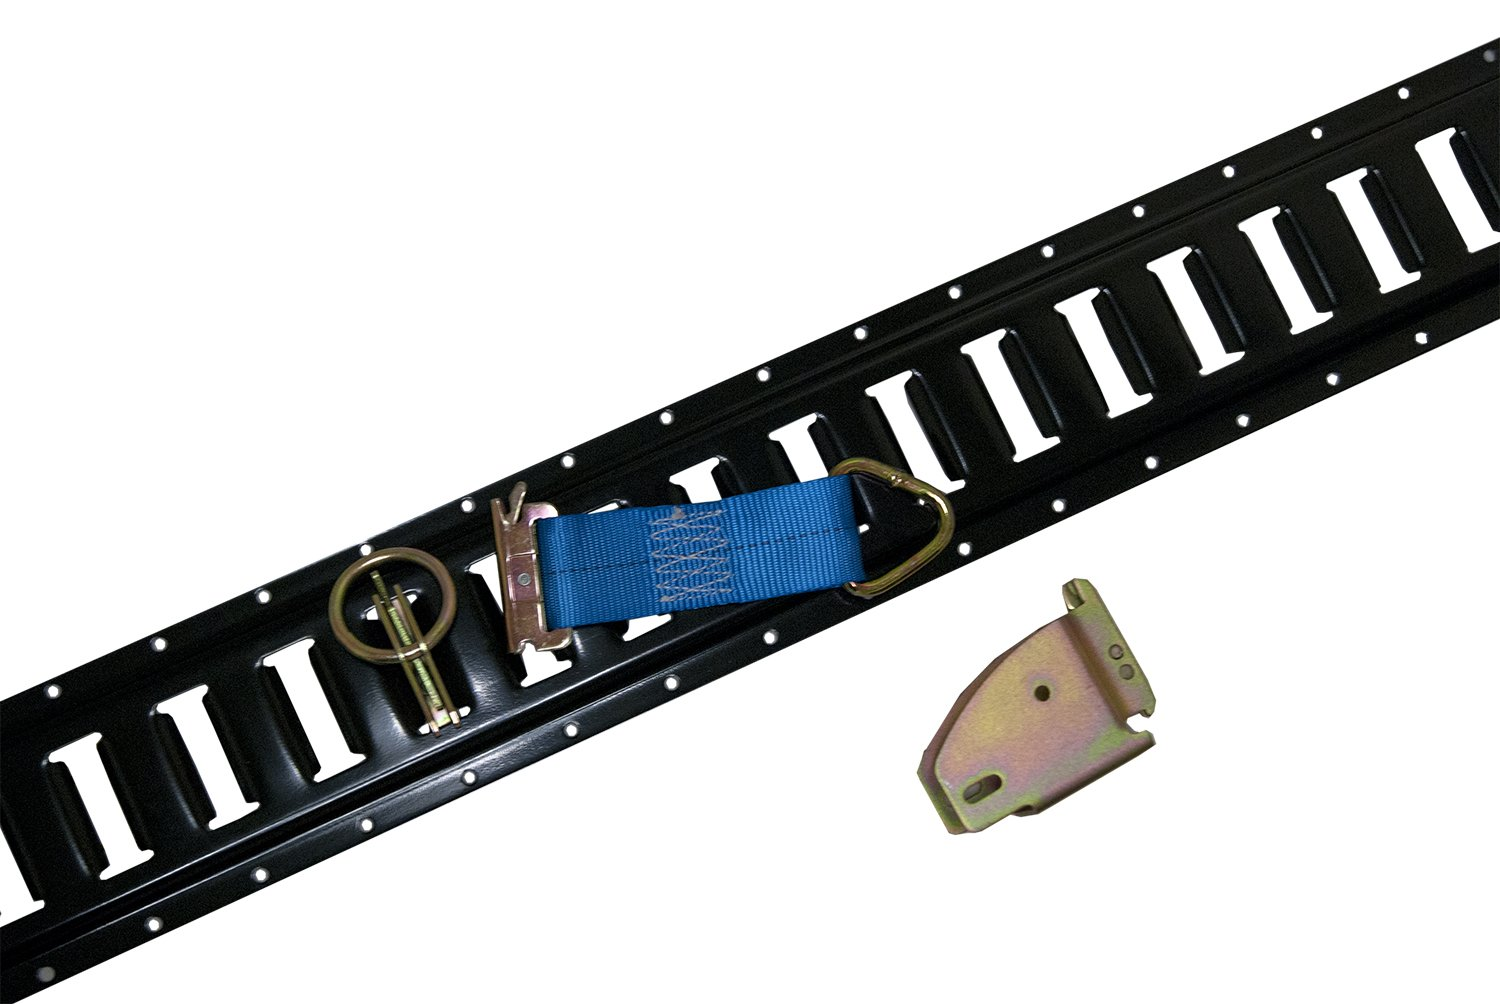 (12) 5' Black E-Track with 12 Wood Beam Sockets, 12 Tie Downs, and 12 O rings